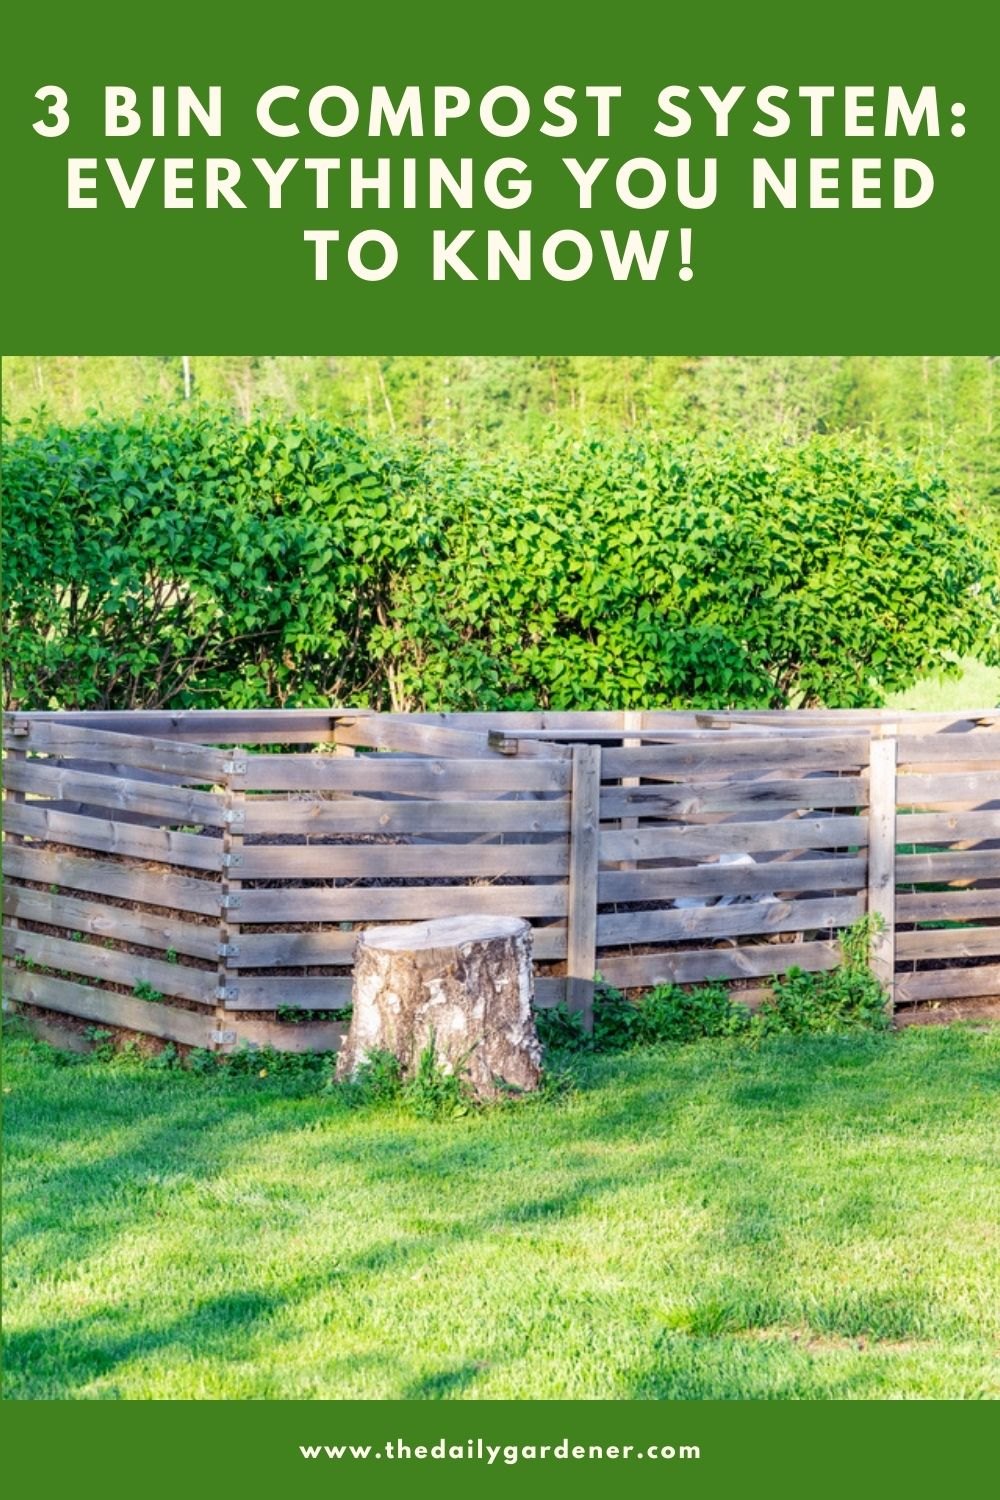 3 Bin Compost System Everything You Need to Know! 1